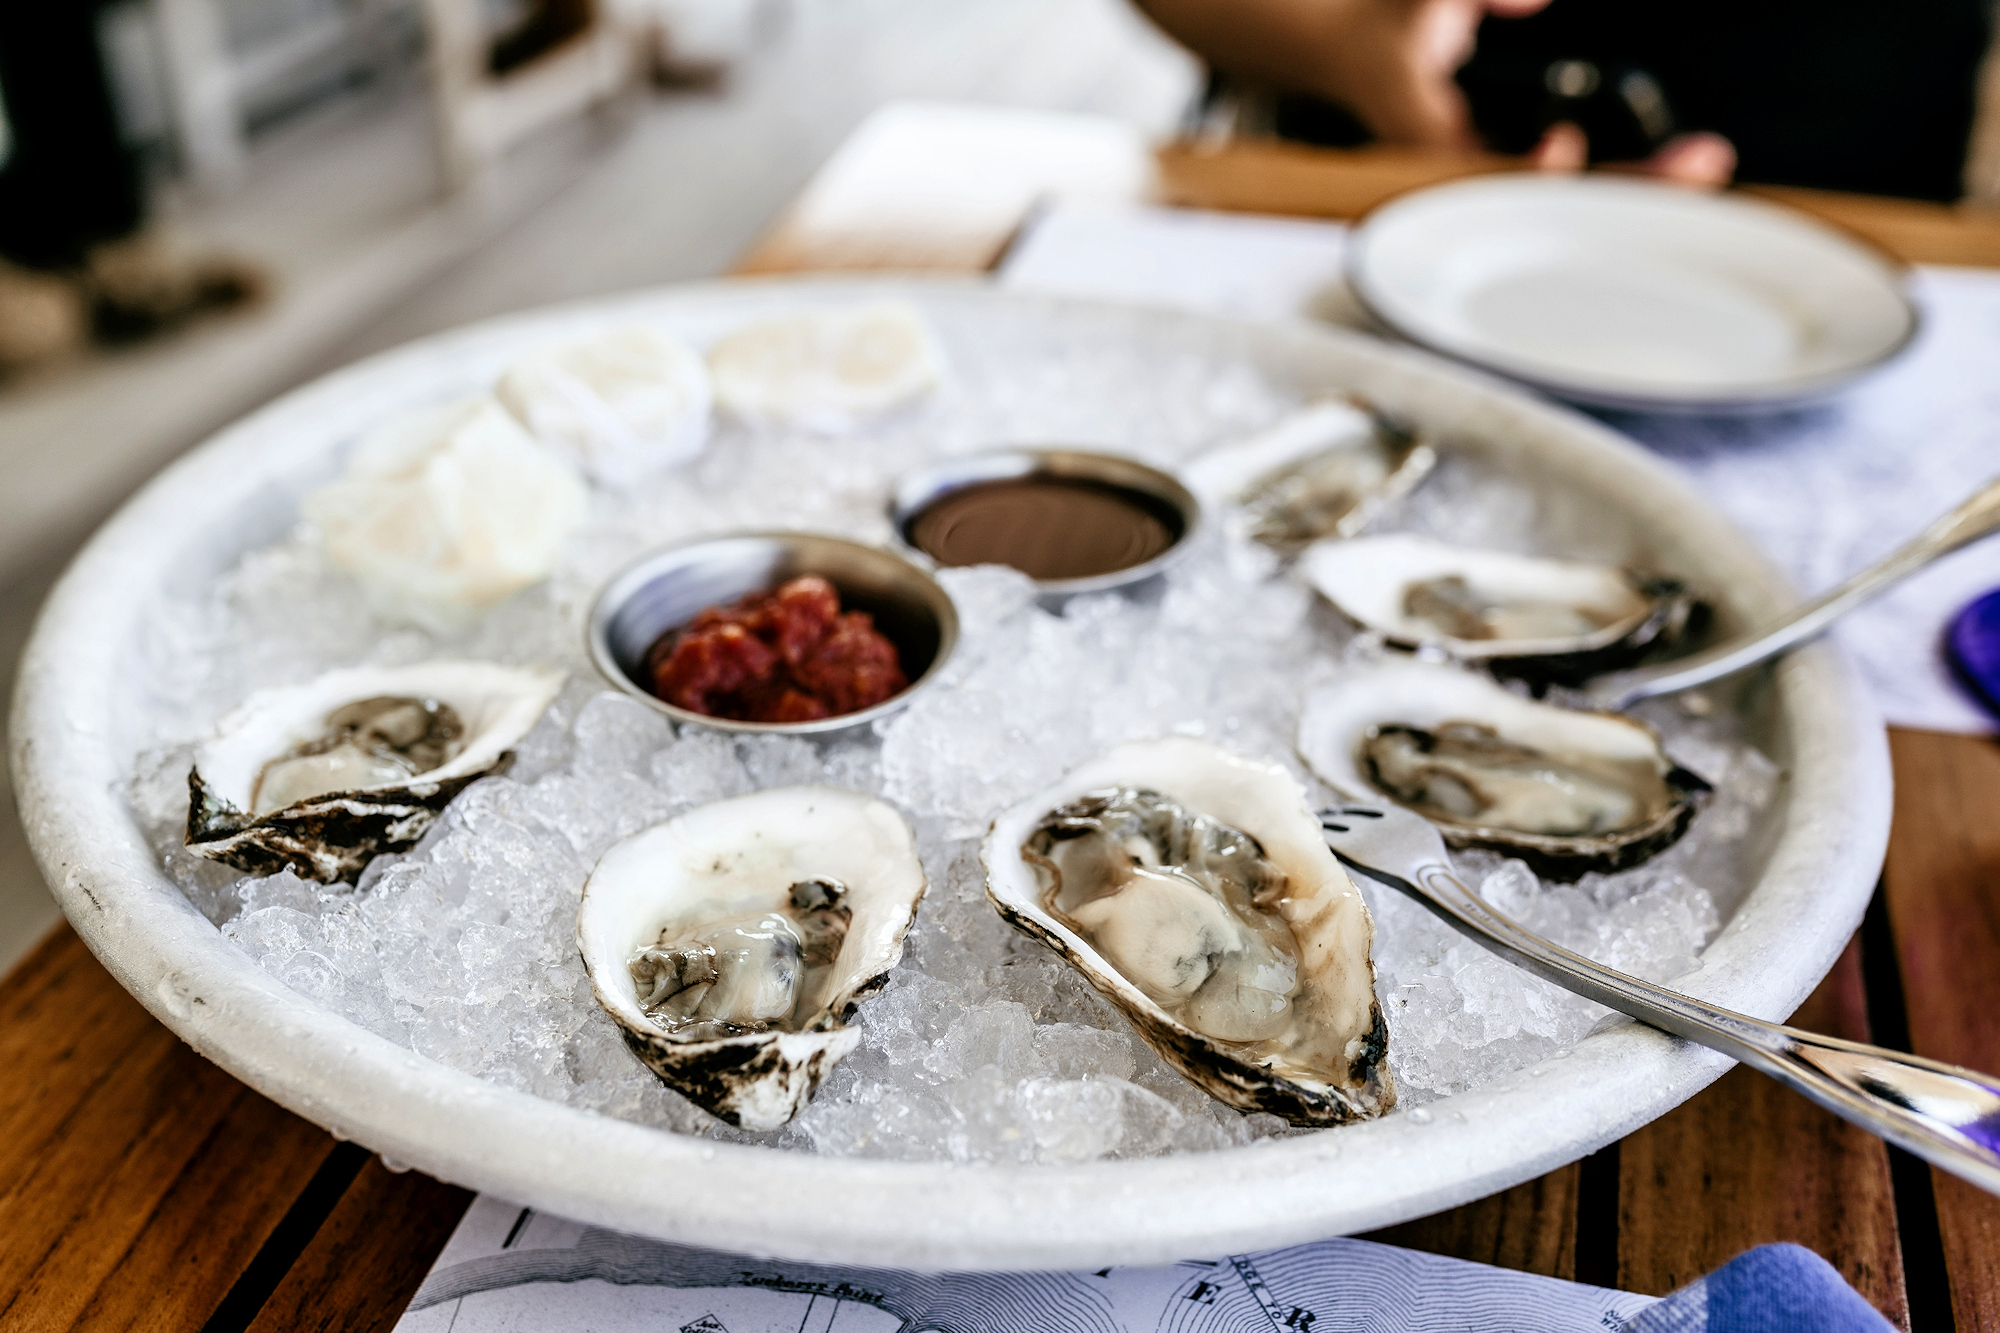 Oysters by Laura Peruchi via Unsplash